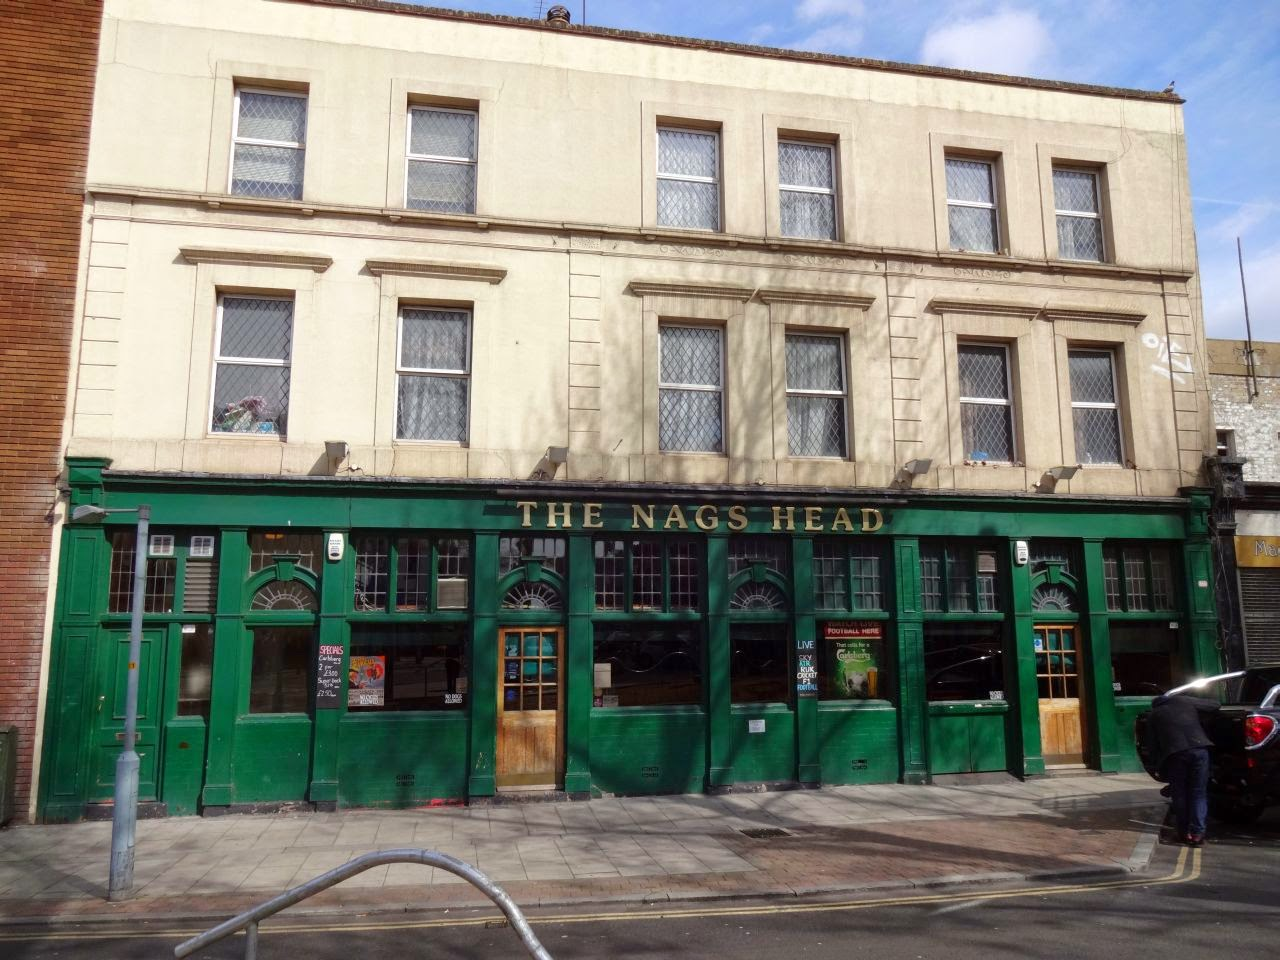 The Nags Head, Peckham